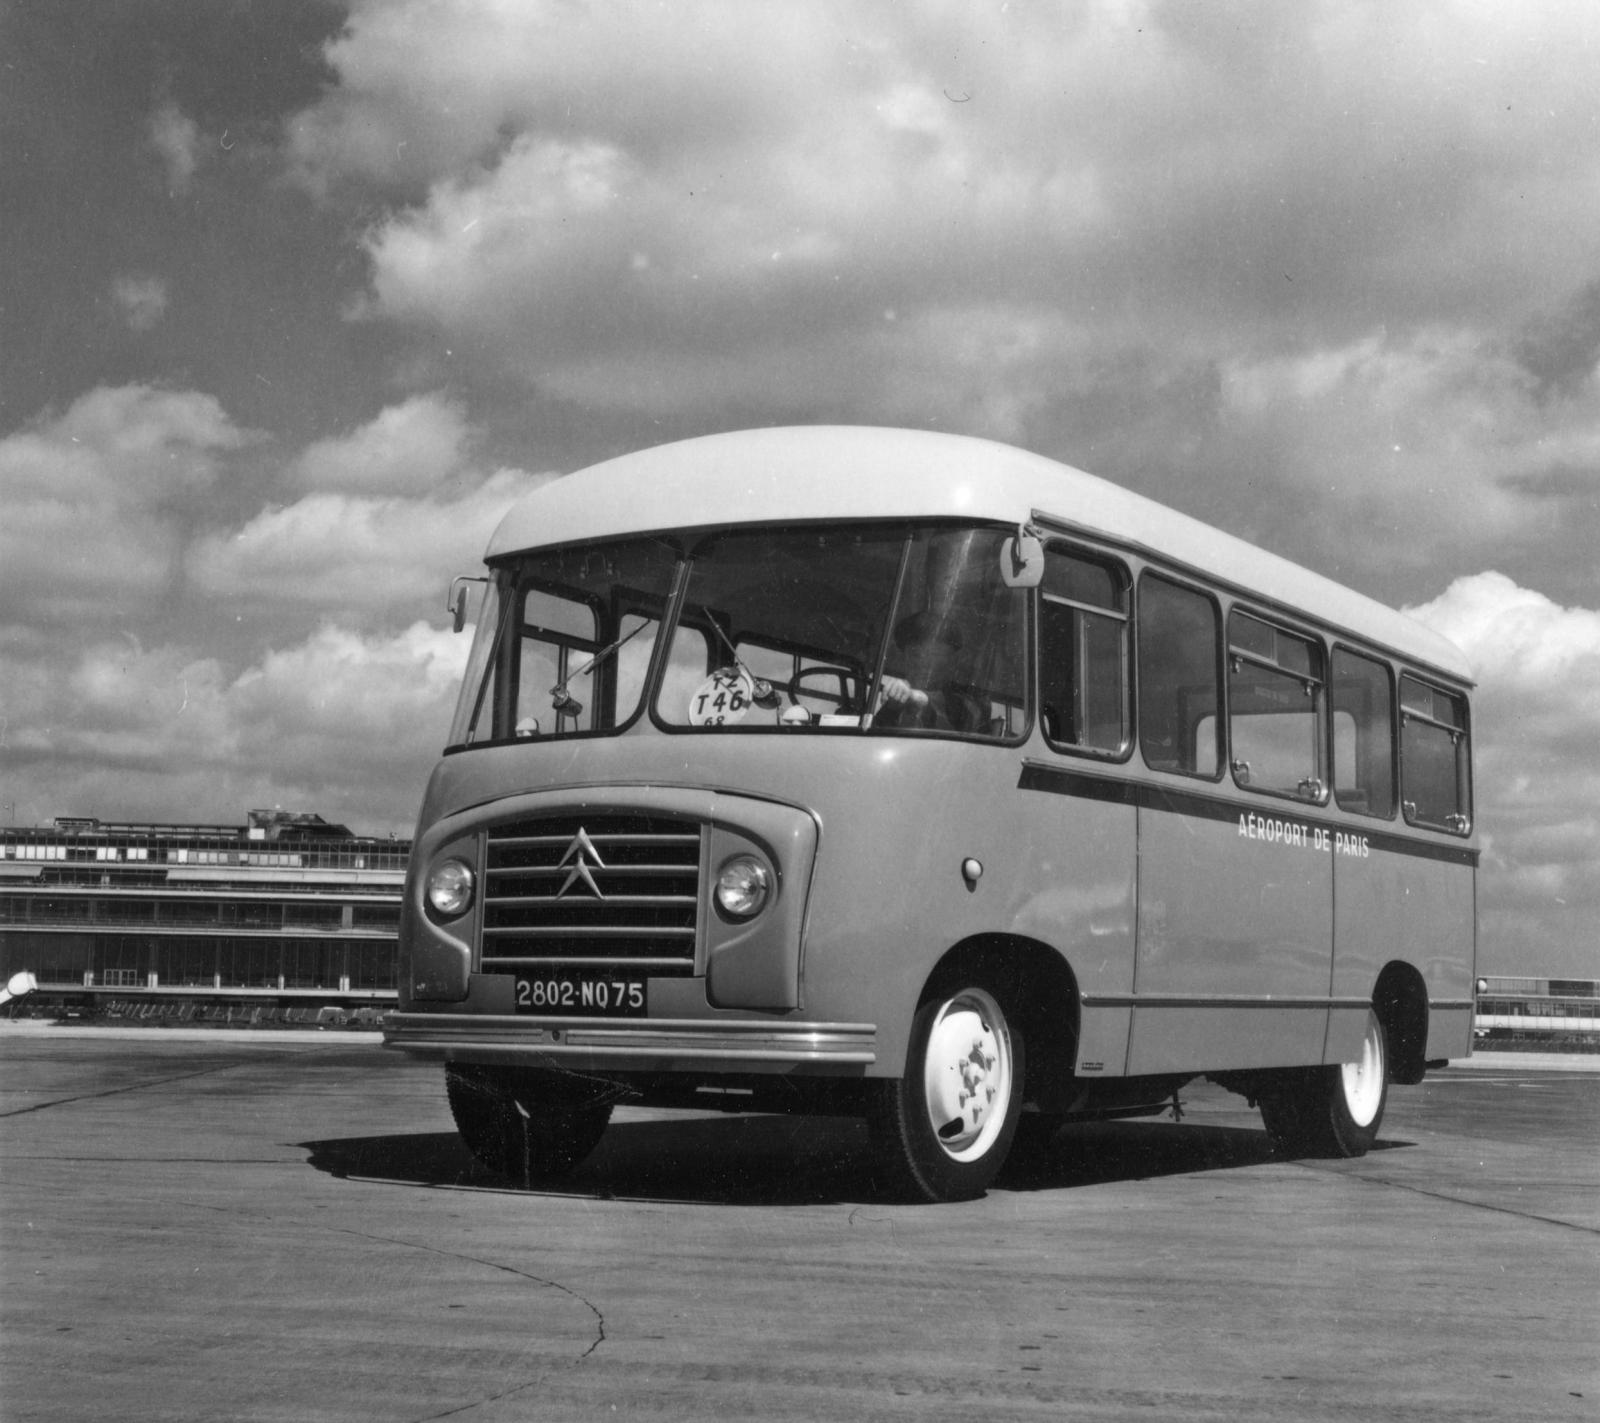 Paris Airport Citroën Bus